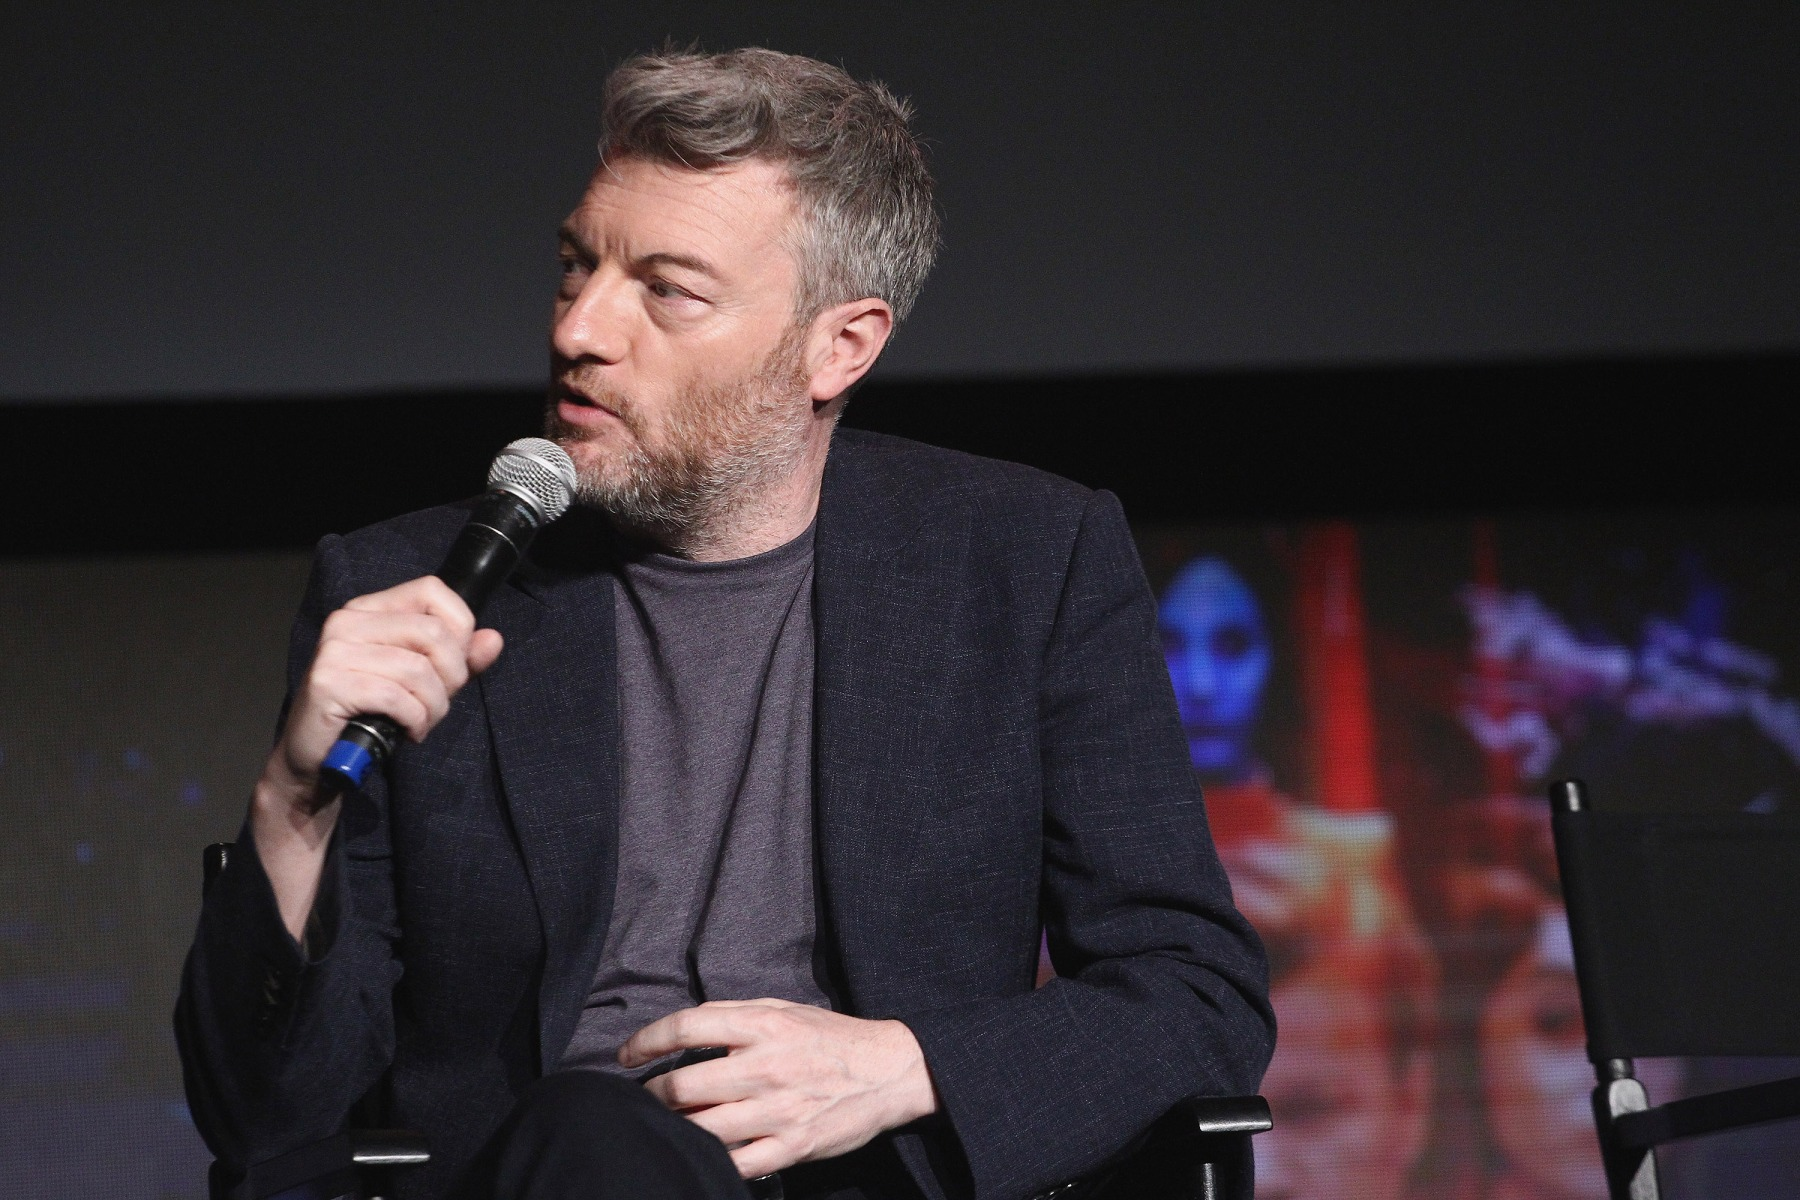 black mirror's Charlie Brooker